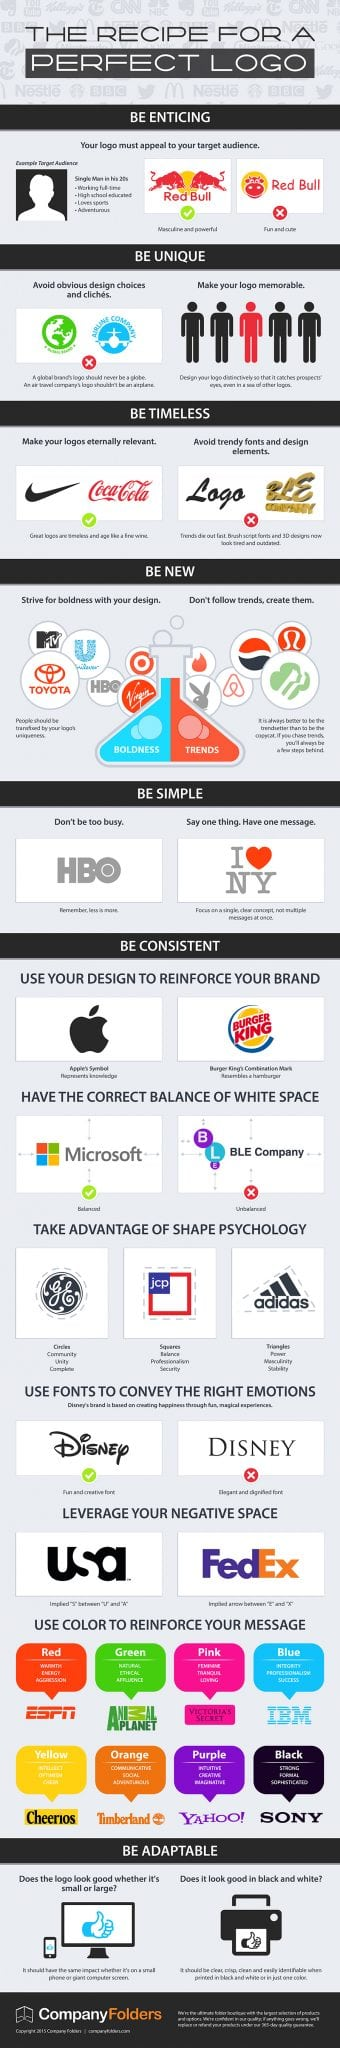 Photo of The Recipe for a Perfect Logo [INFOGRAPHIC]